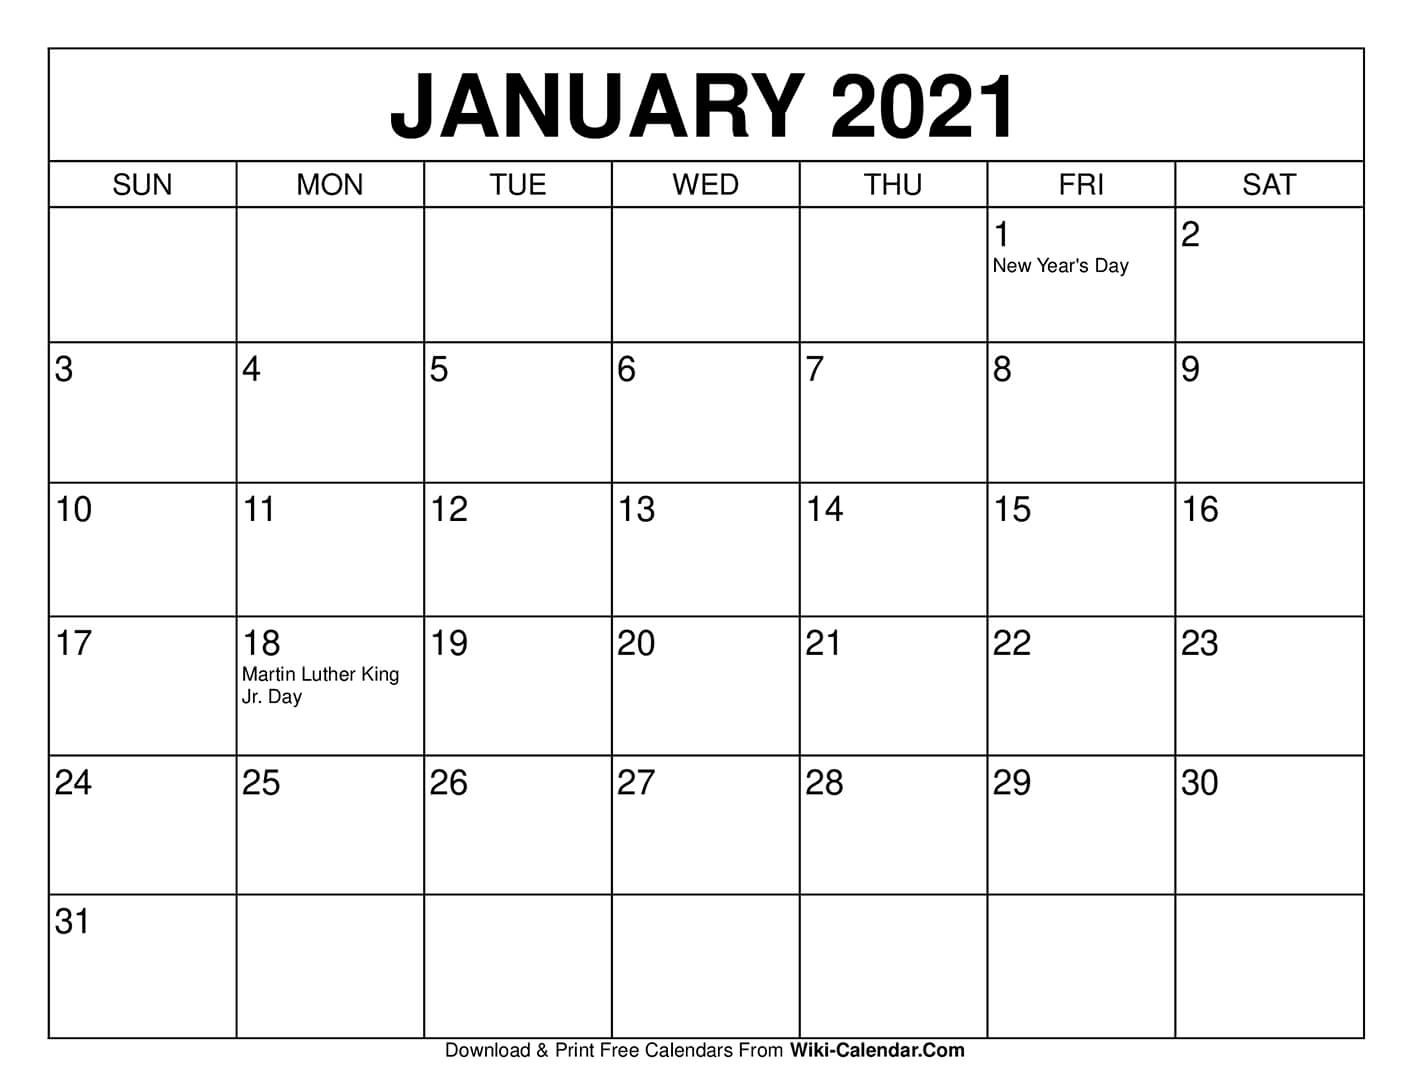 Free Printable January 2021 Calendars-Free Printable Calendar 2021 Without Download